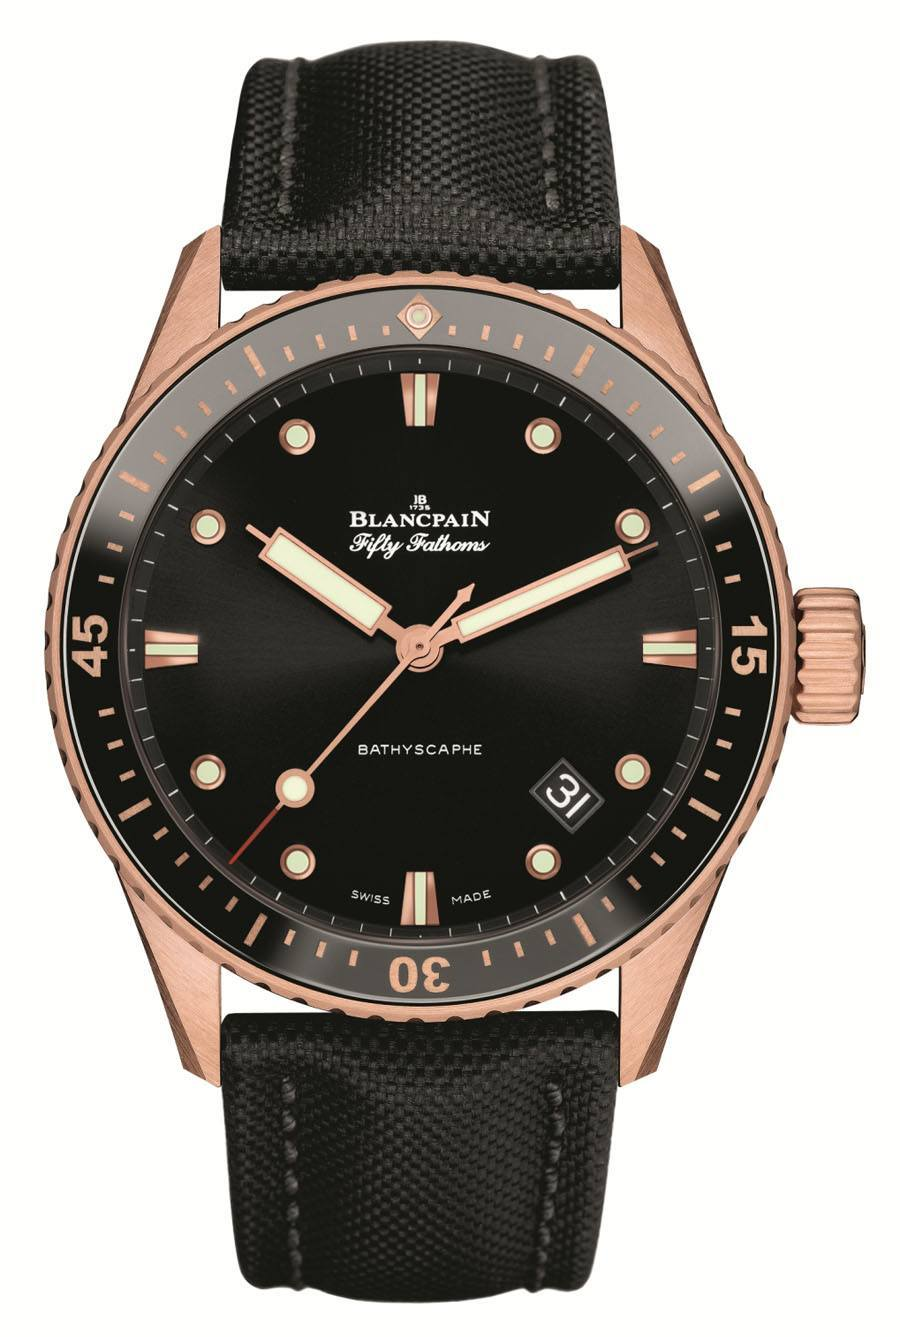 Blancpain: Fifty Fathoms Bathyscaphe Sednagold